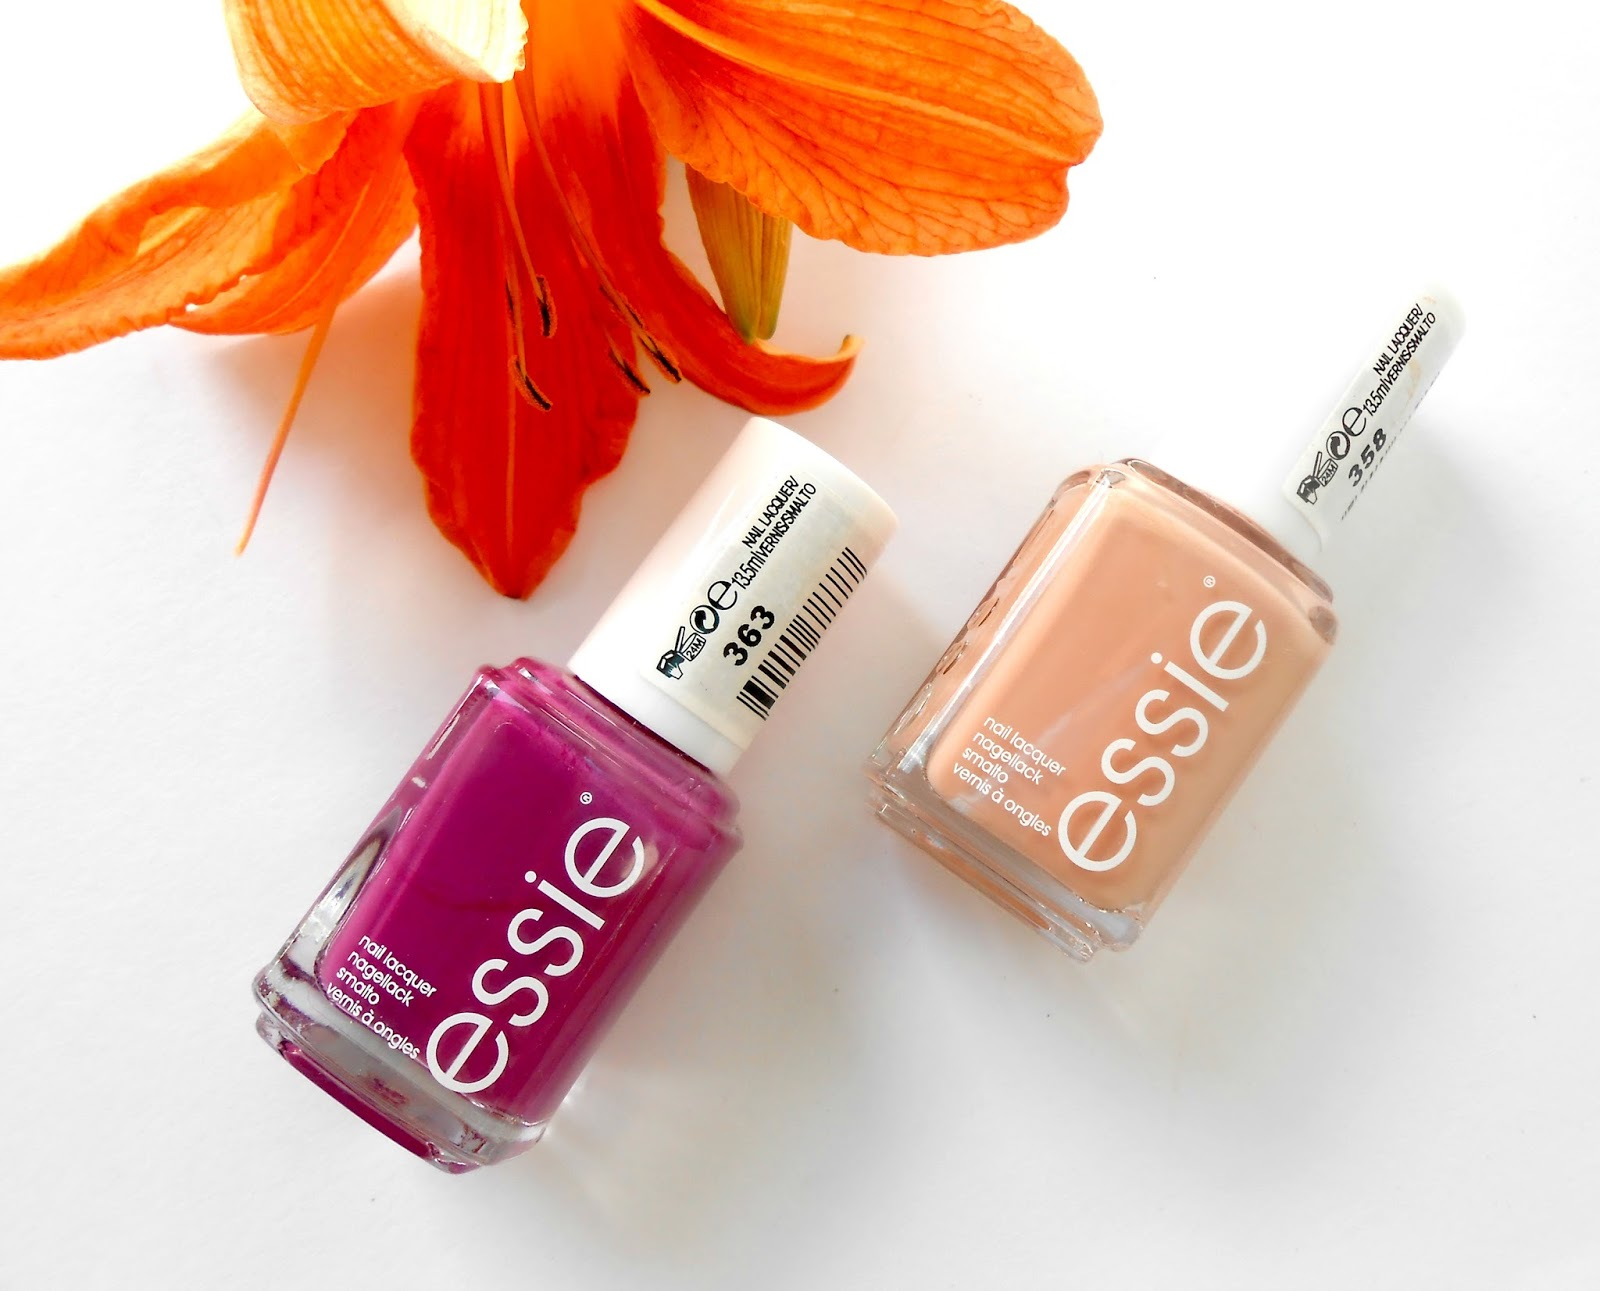 Essie Nail Polish Brush | Splendid Wedding Company